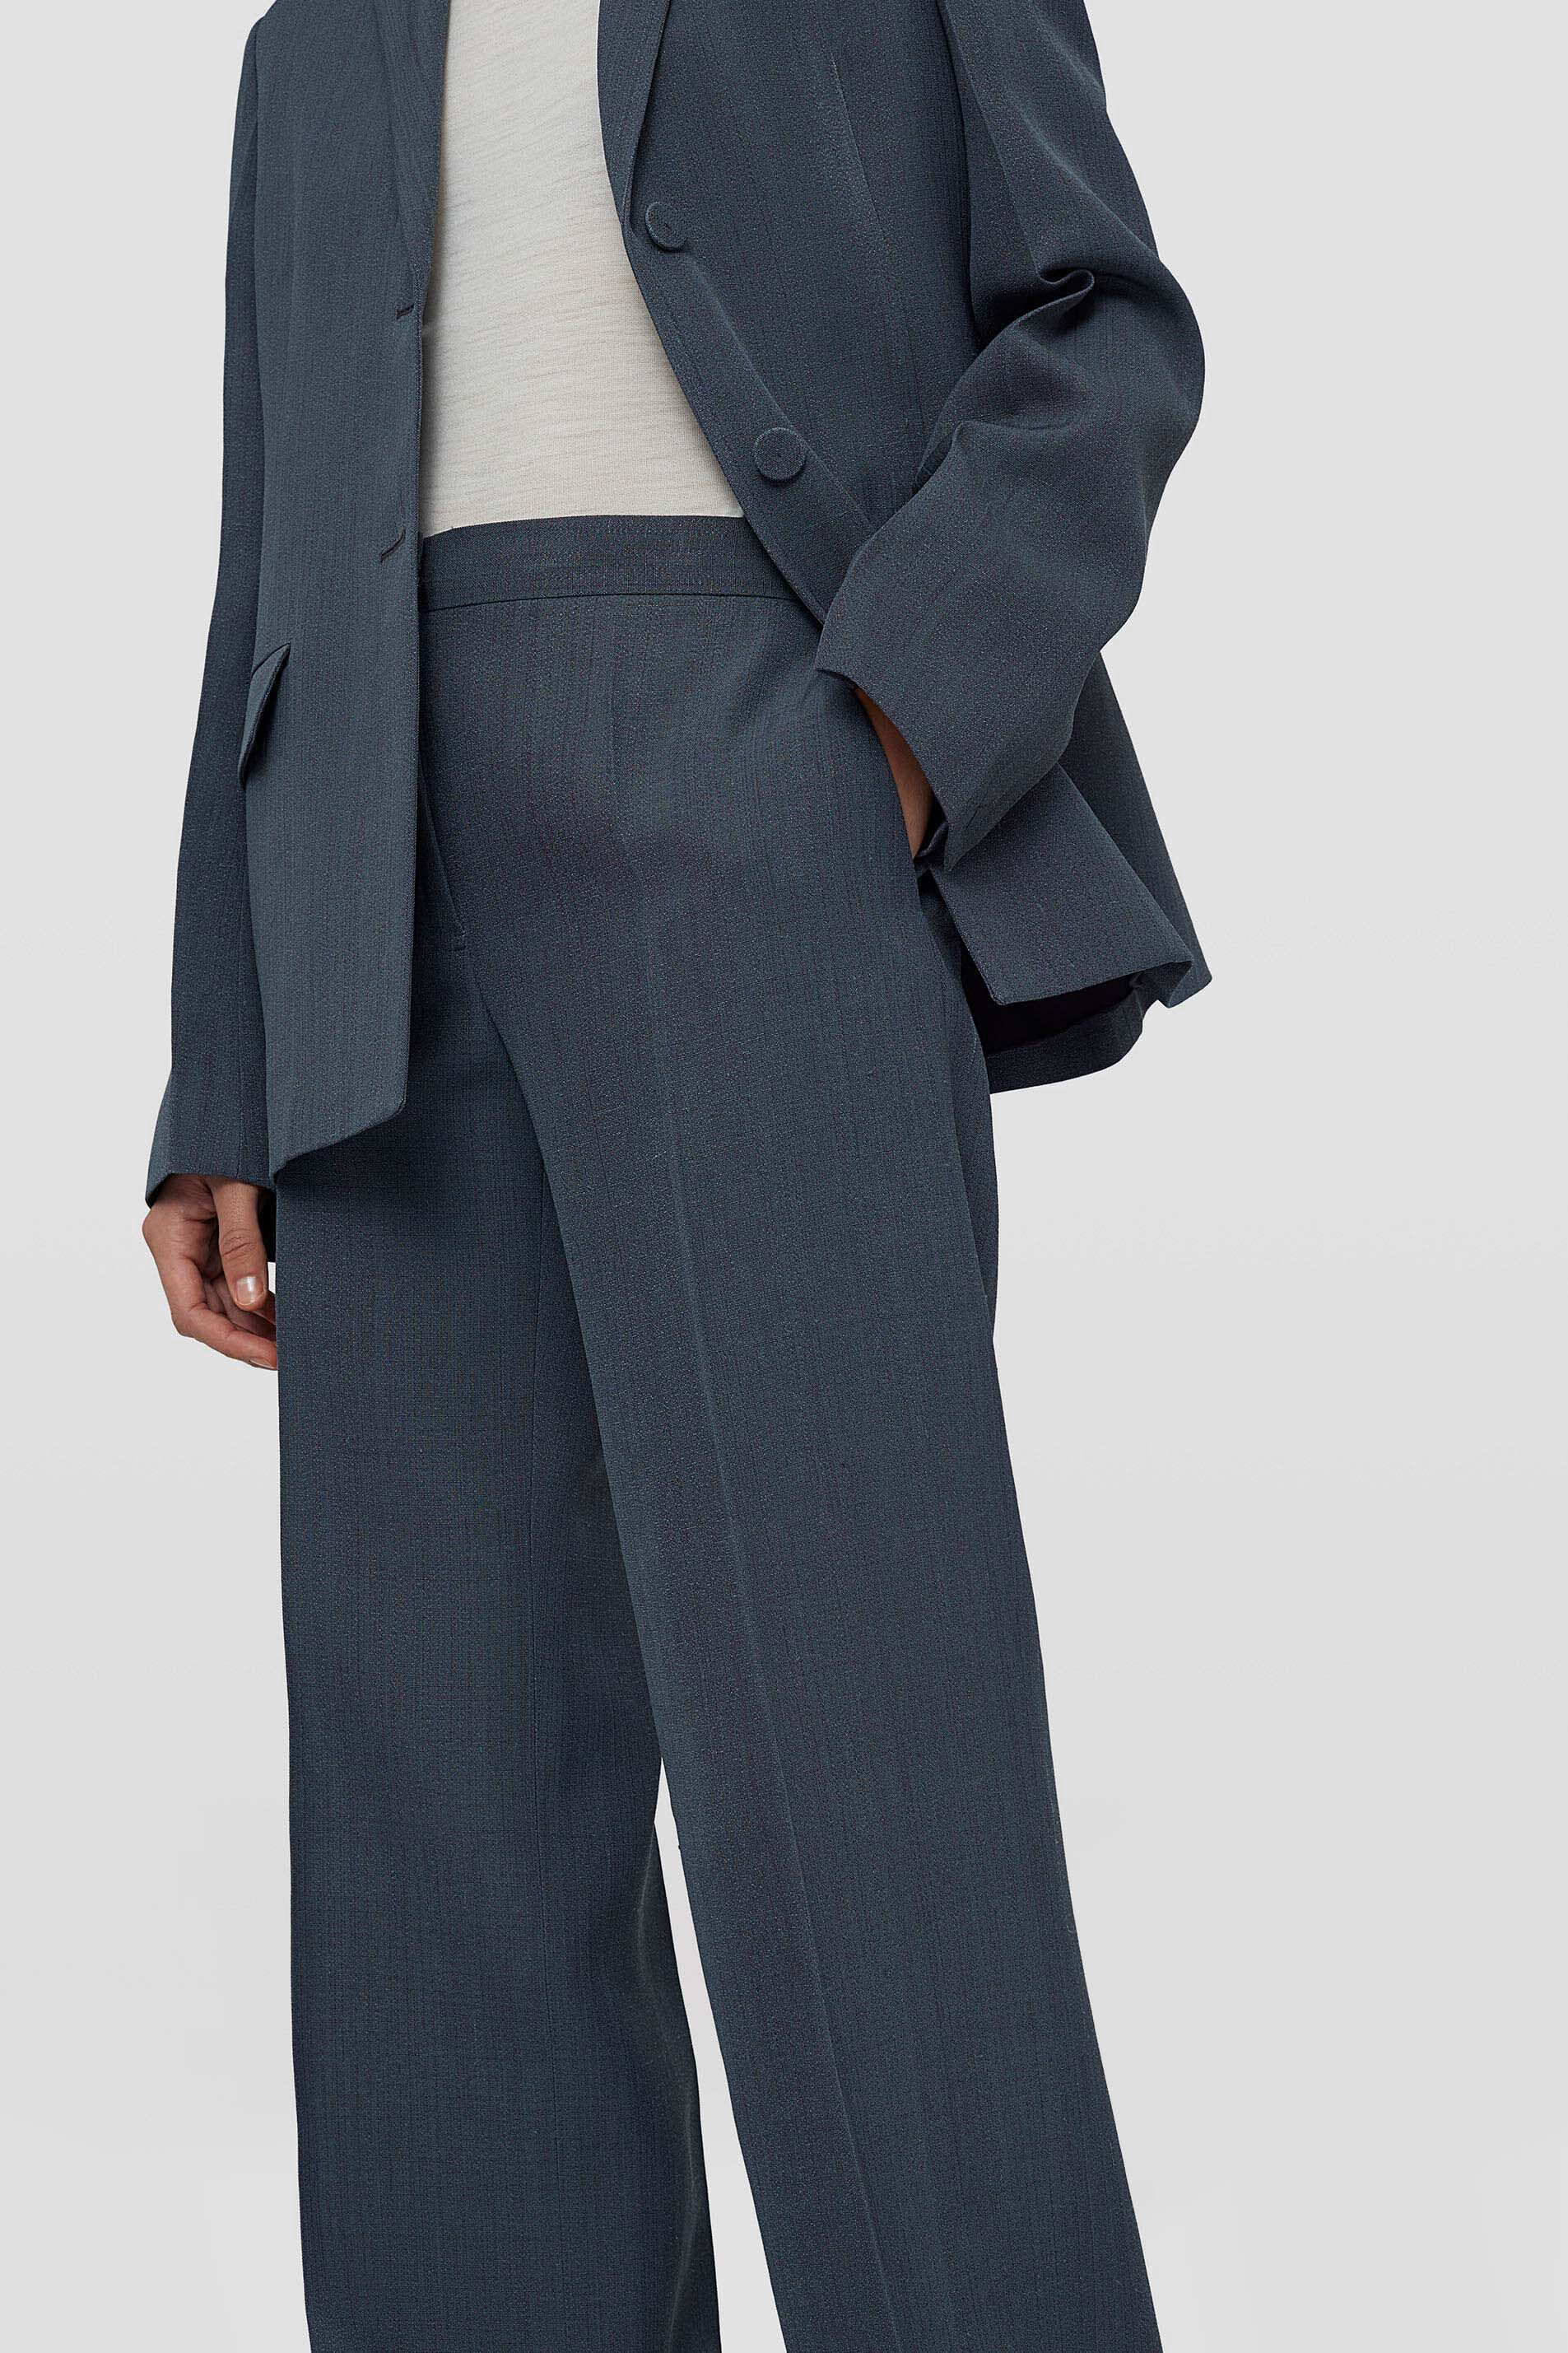 Trousers, dark grey, large